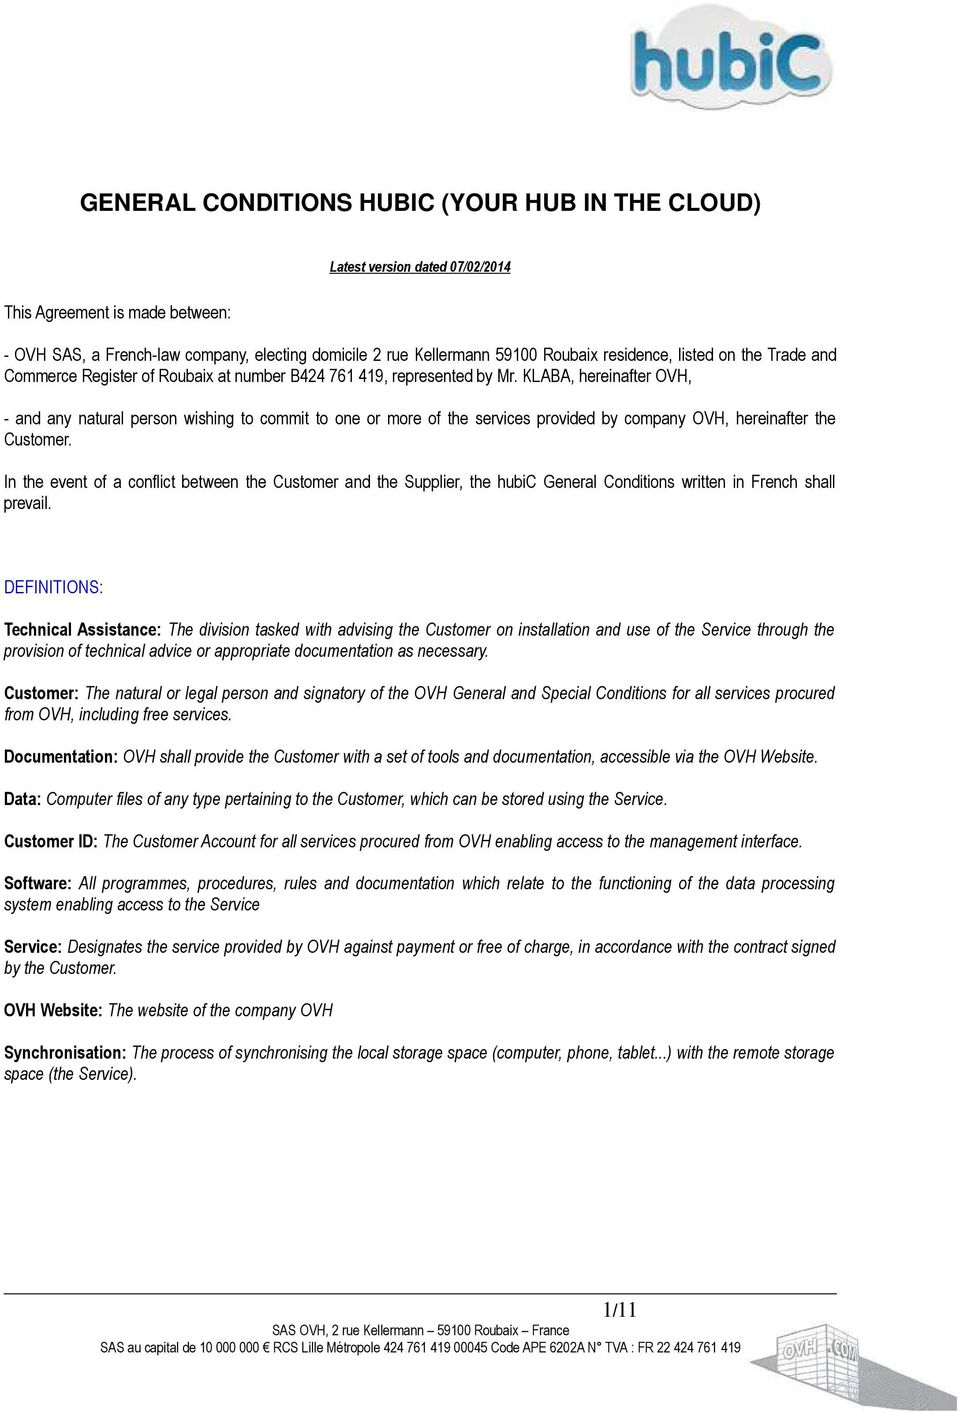 GENERAL CONDITIONS HUBIC (YOUR HUB IN THE CLOUD) - PDF